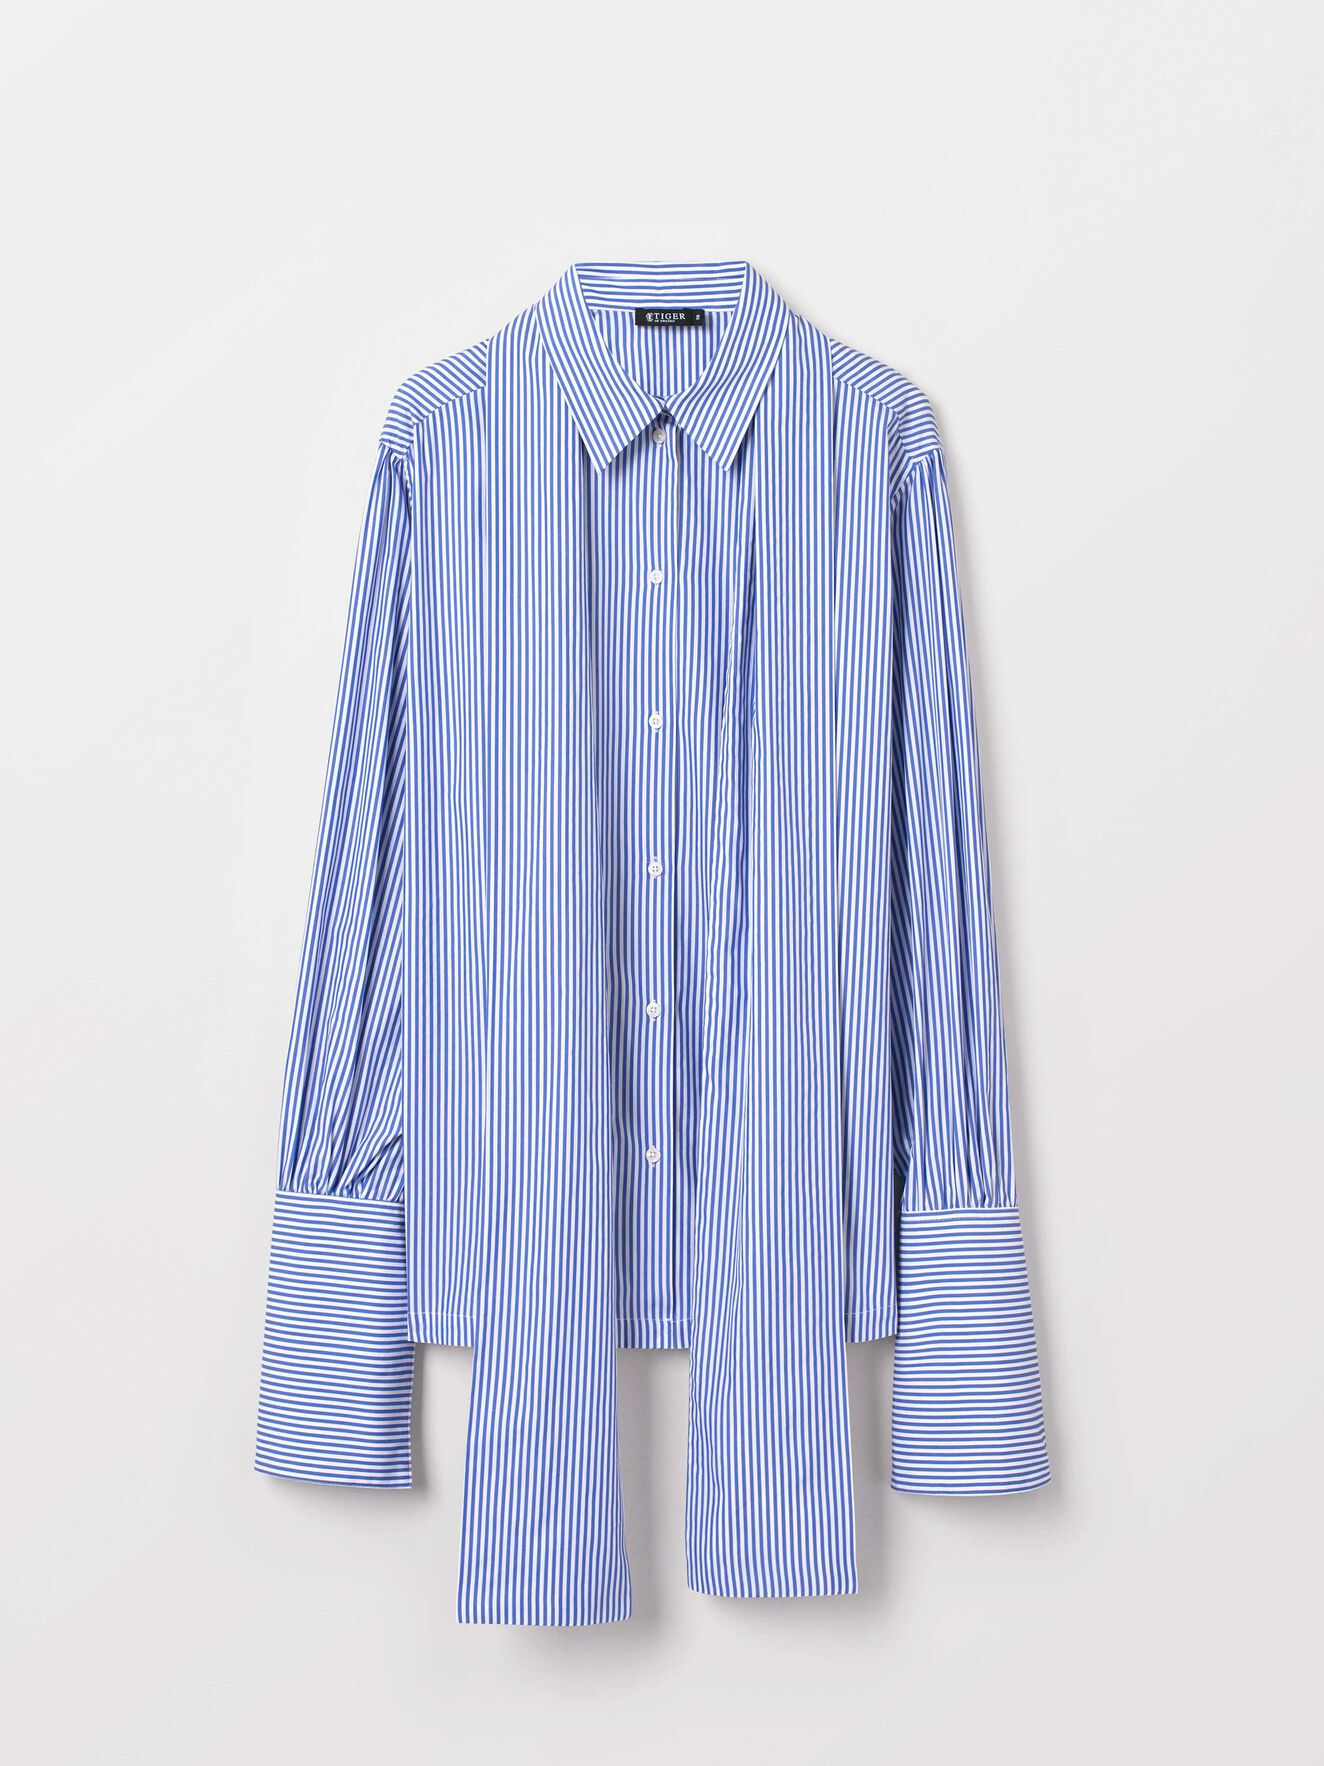 Kumarin S Shirt in Soft Wave from Tiger of Sweden